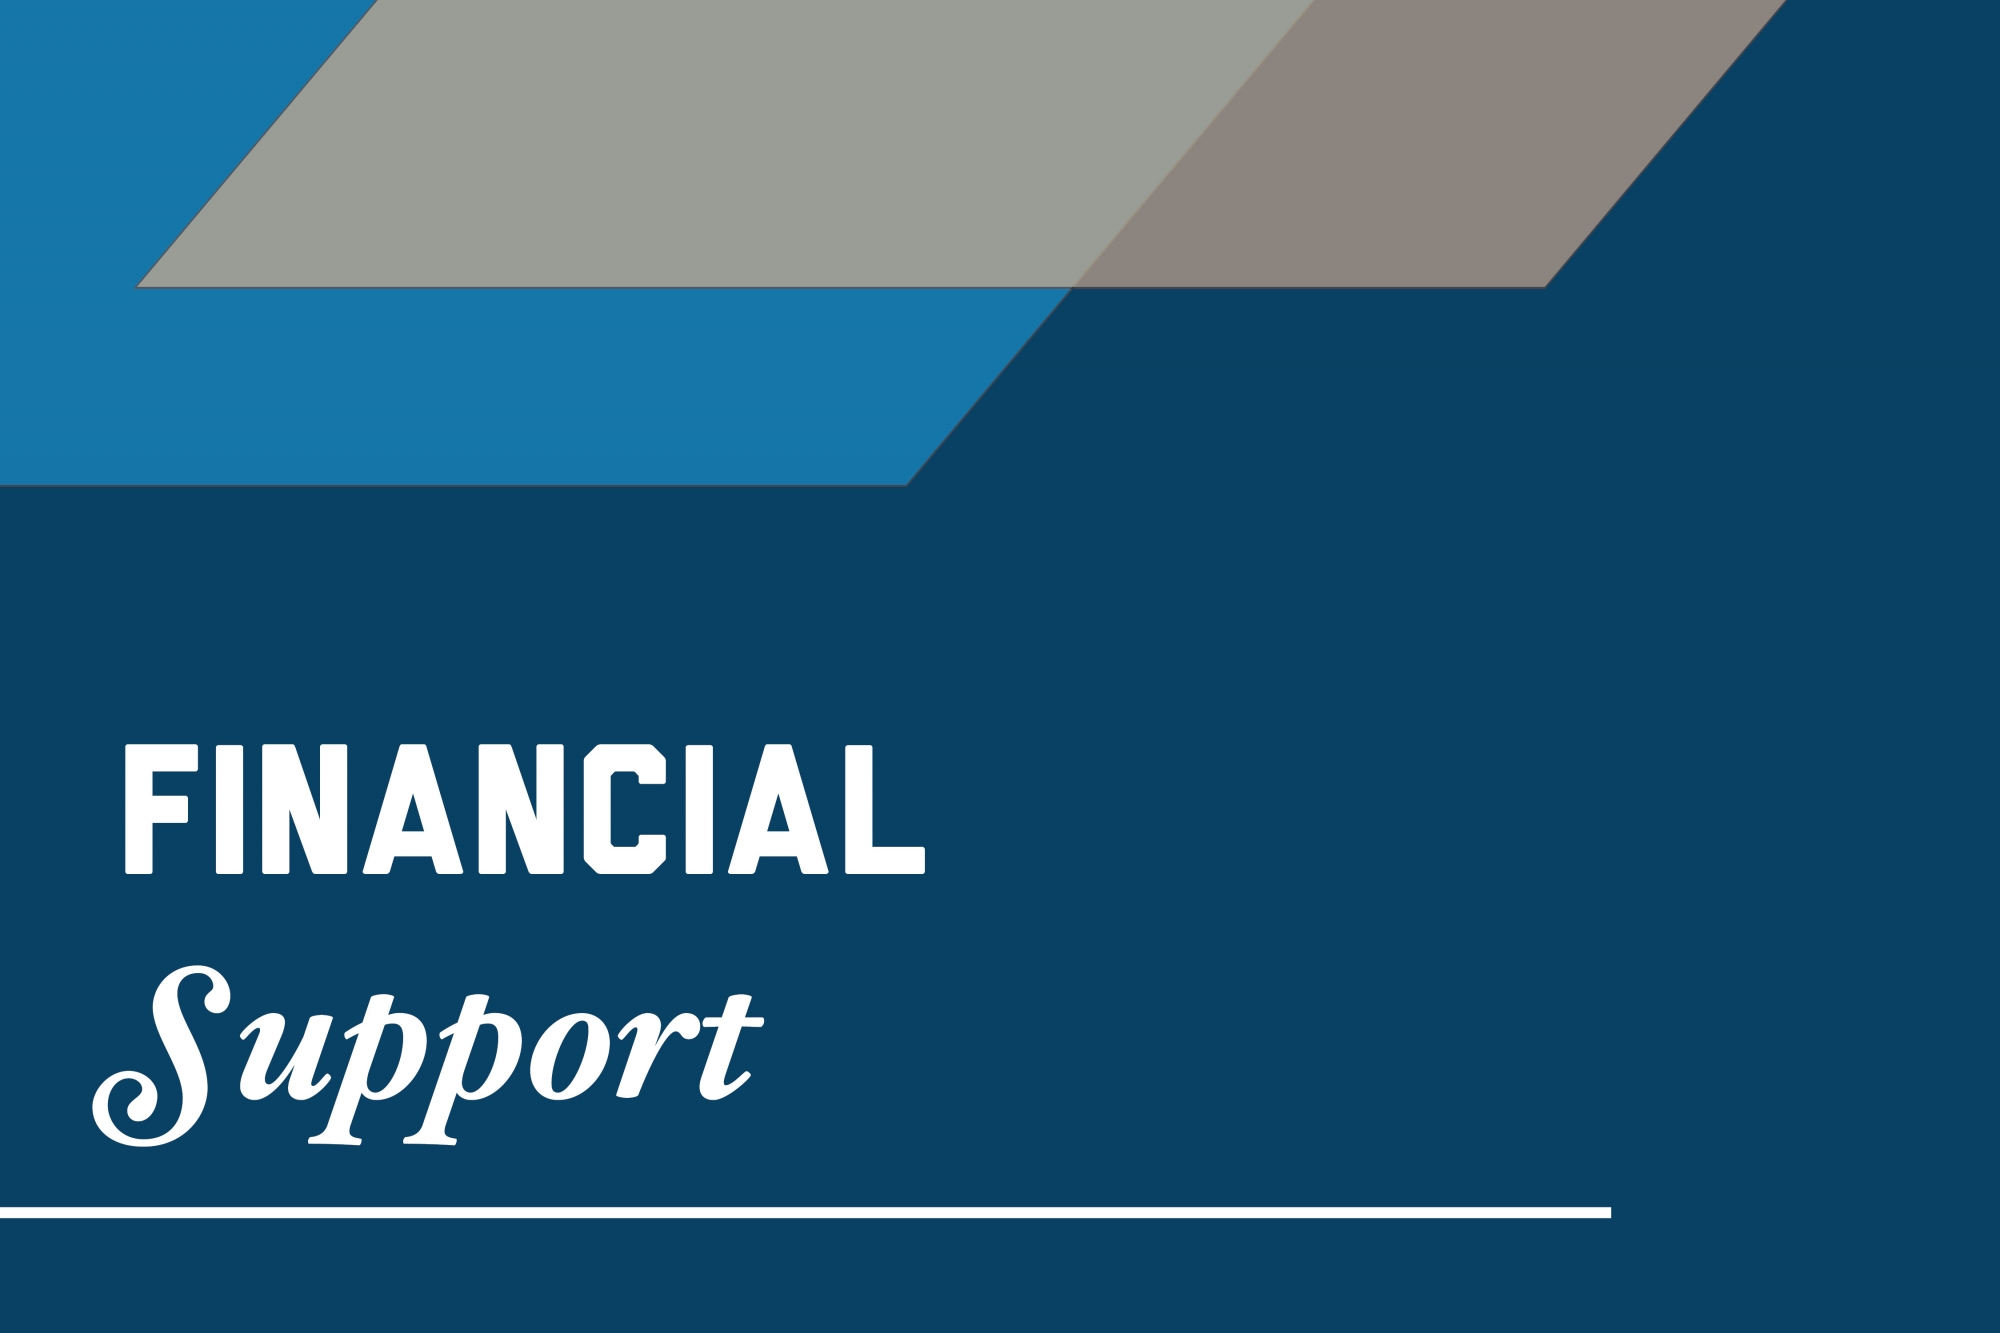 Graphic: Financial support